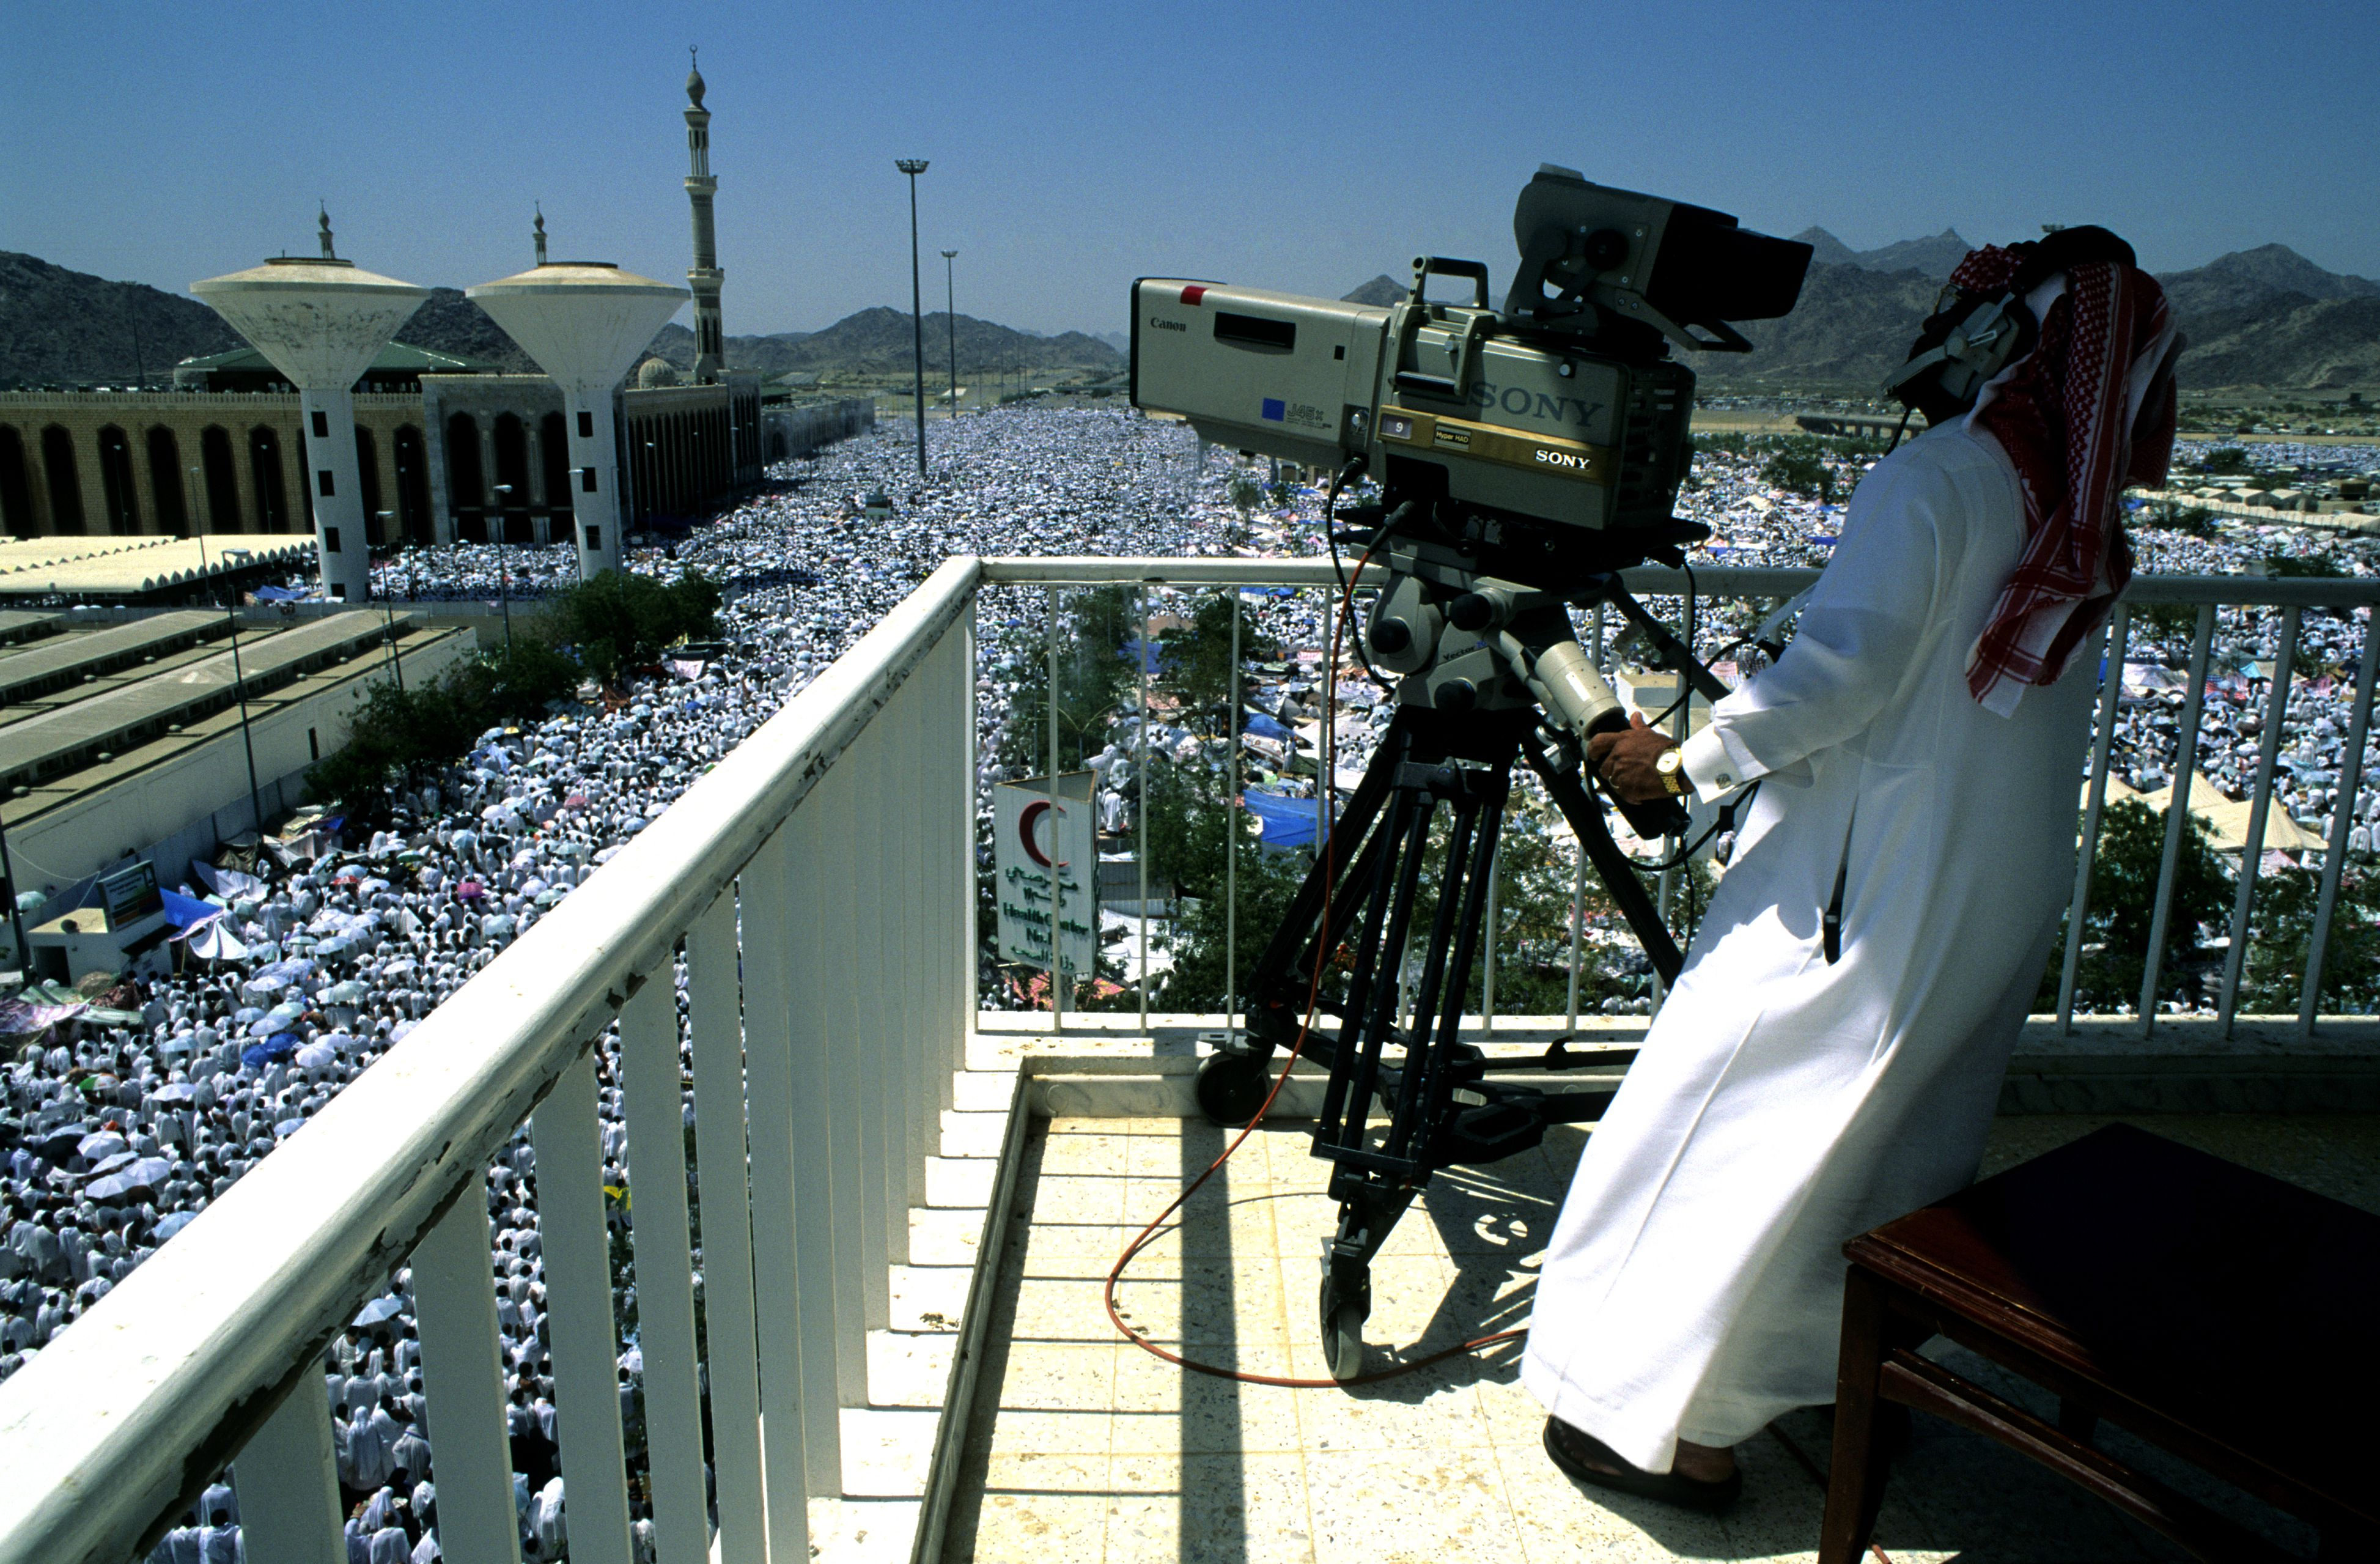 The Day of Arafat Significance and Meaning